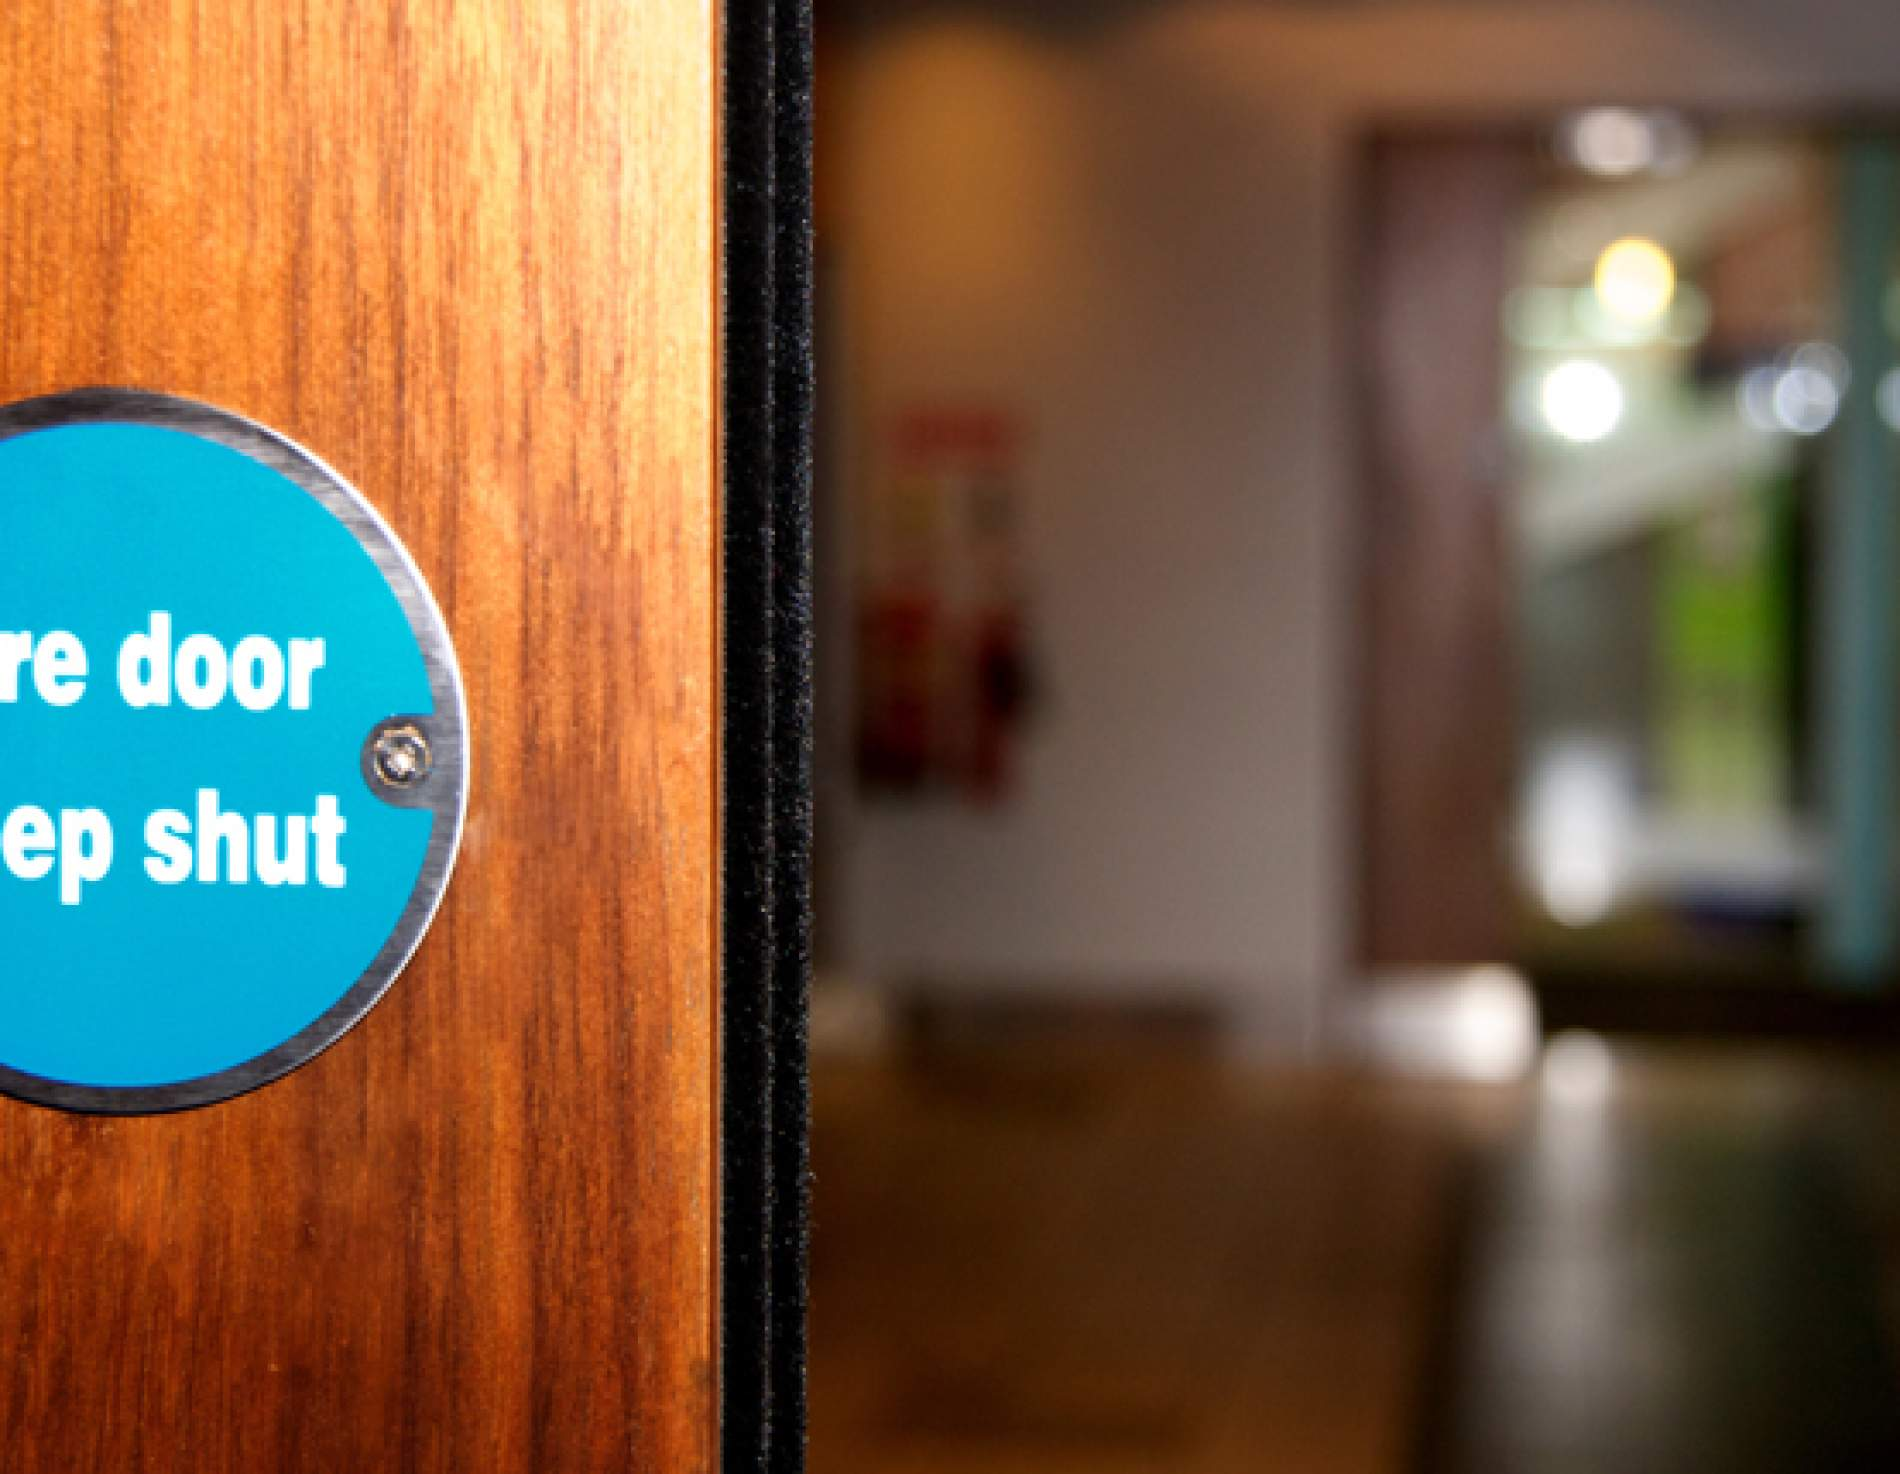 Fire Doors: Critical protections – but some maintenance required